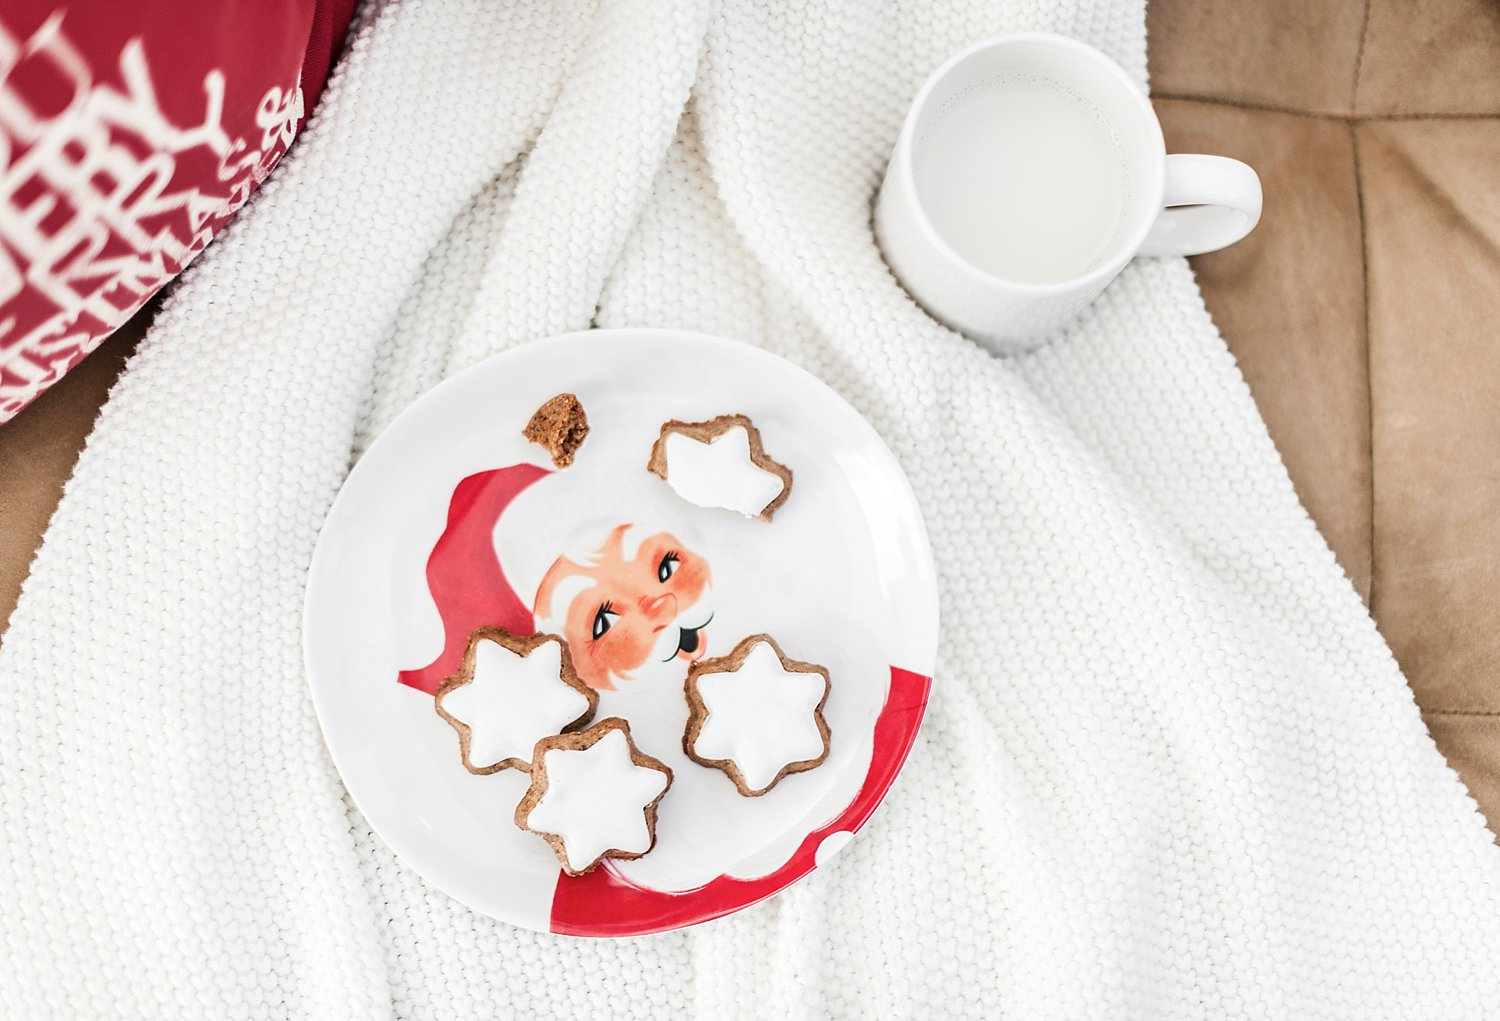 cookies and milk left for santa on a white blanket